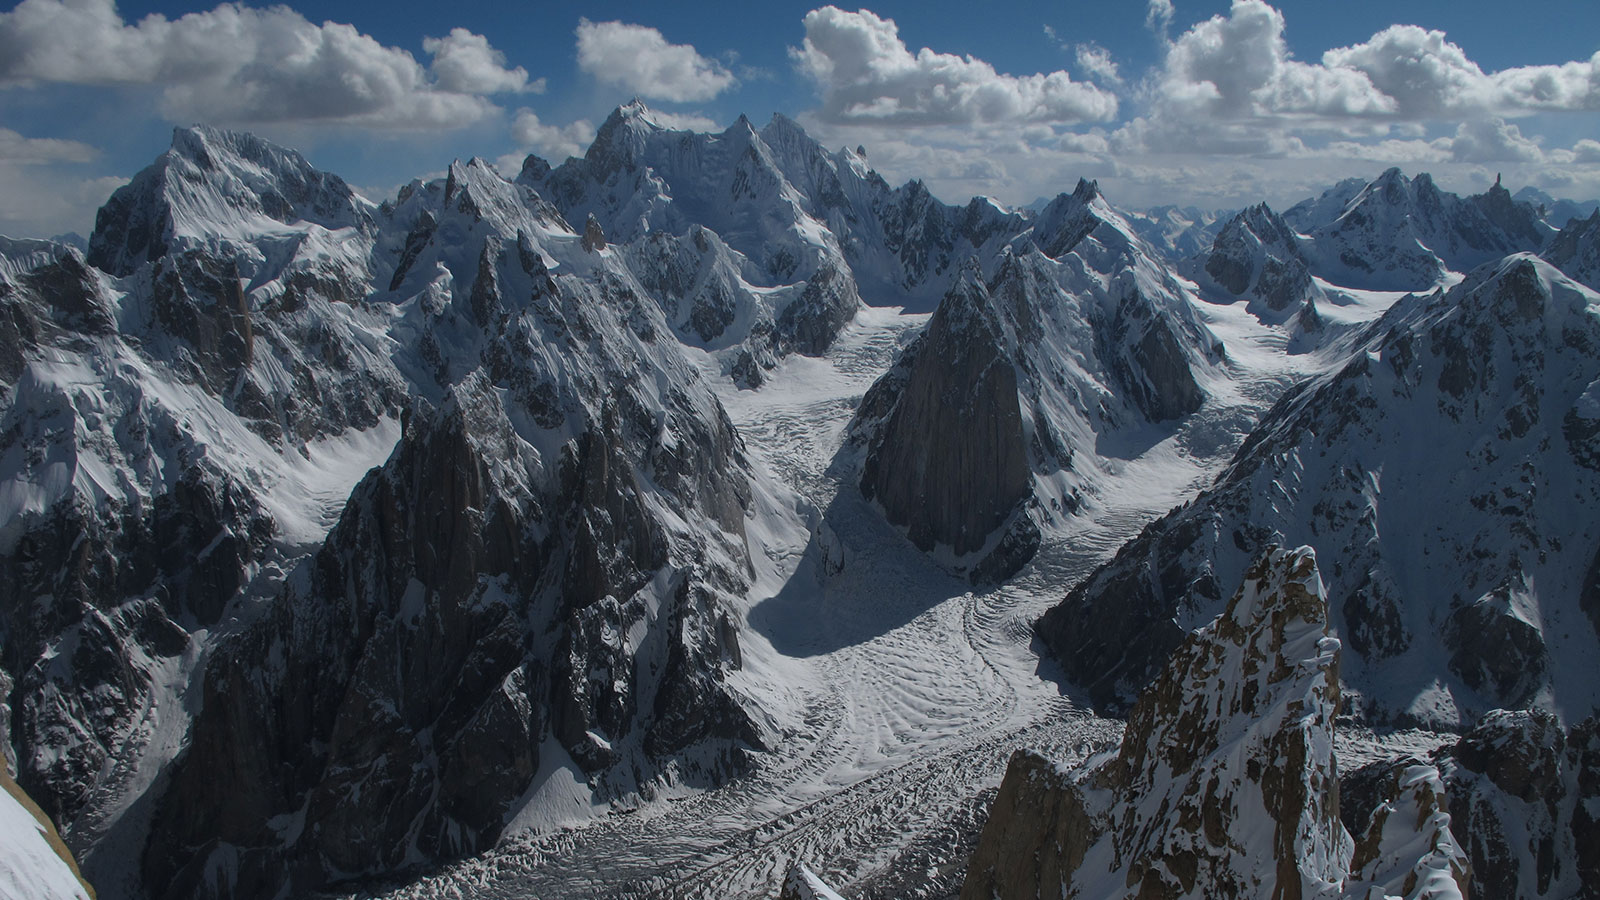 Image: NASA Finds Asian Glaciers Slowed by Ice Loss